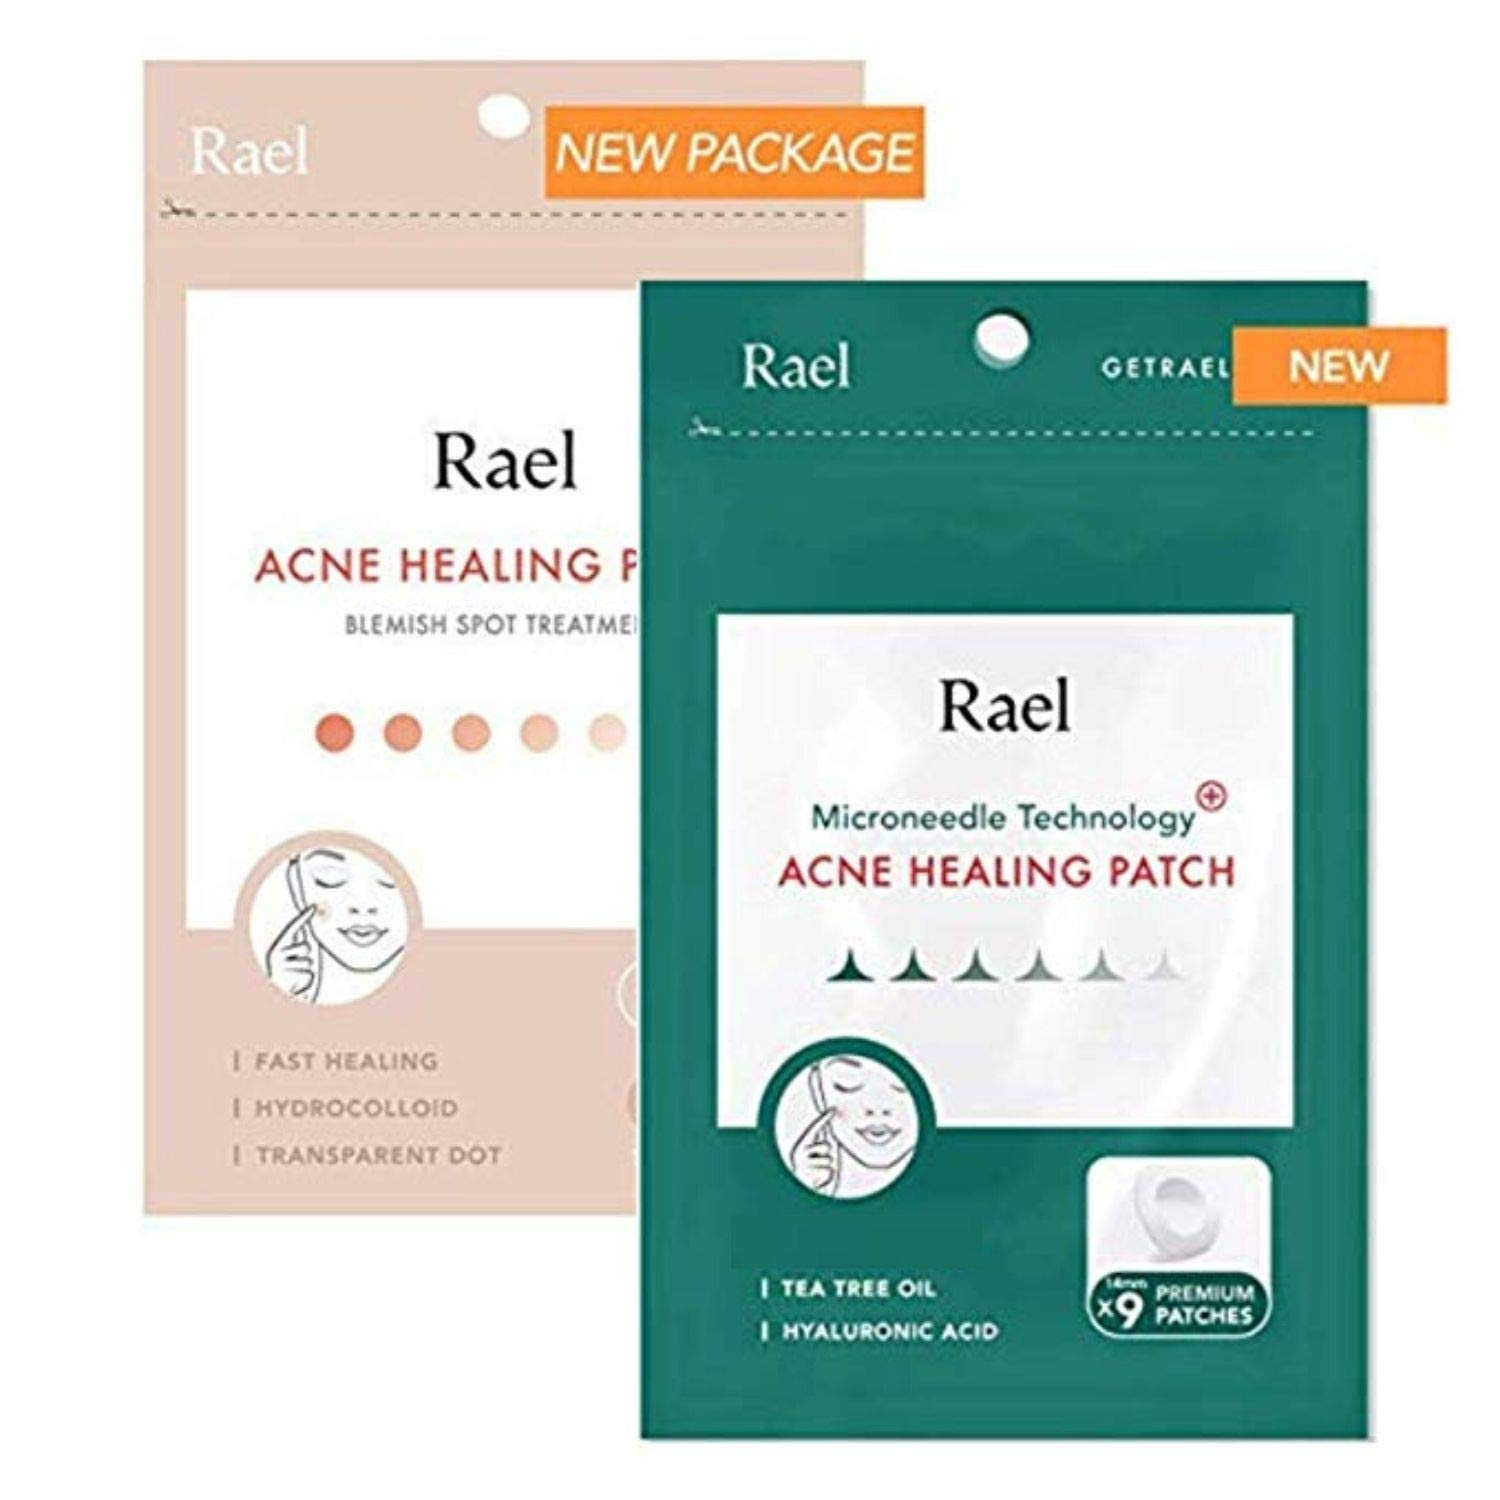 Rael Acne Pimple Healing Patch - Microneedle Acne Spot, Absorbing Cover, Invisible, Blemish Spot, Hydrocolloid, Skin Treatment, Facial Stickers, Two Sizes, Blends in with skin (33 Patches, 2Pack)